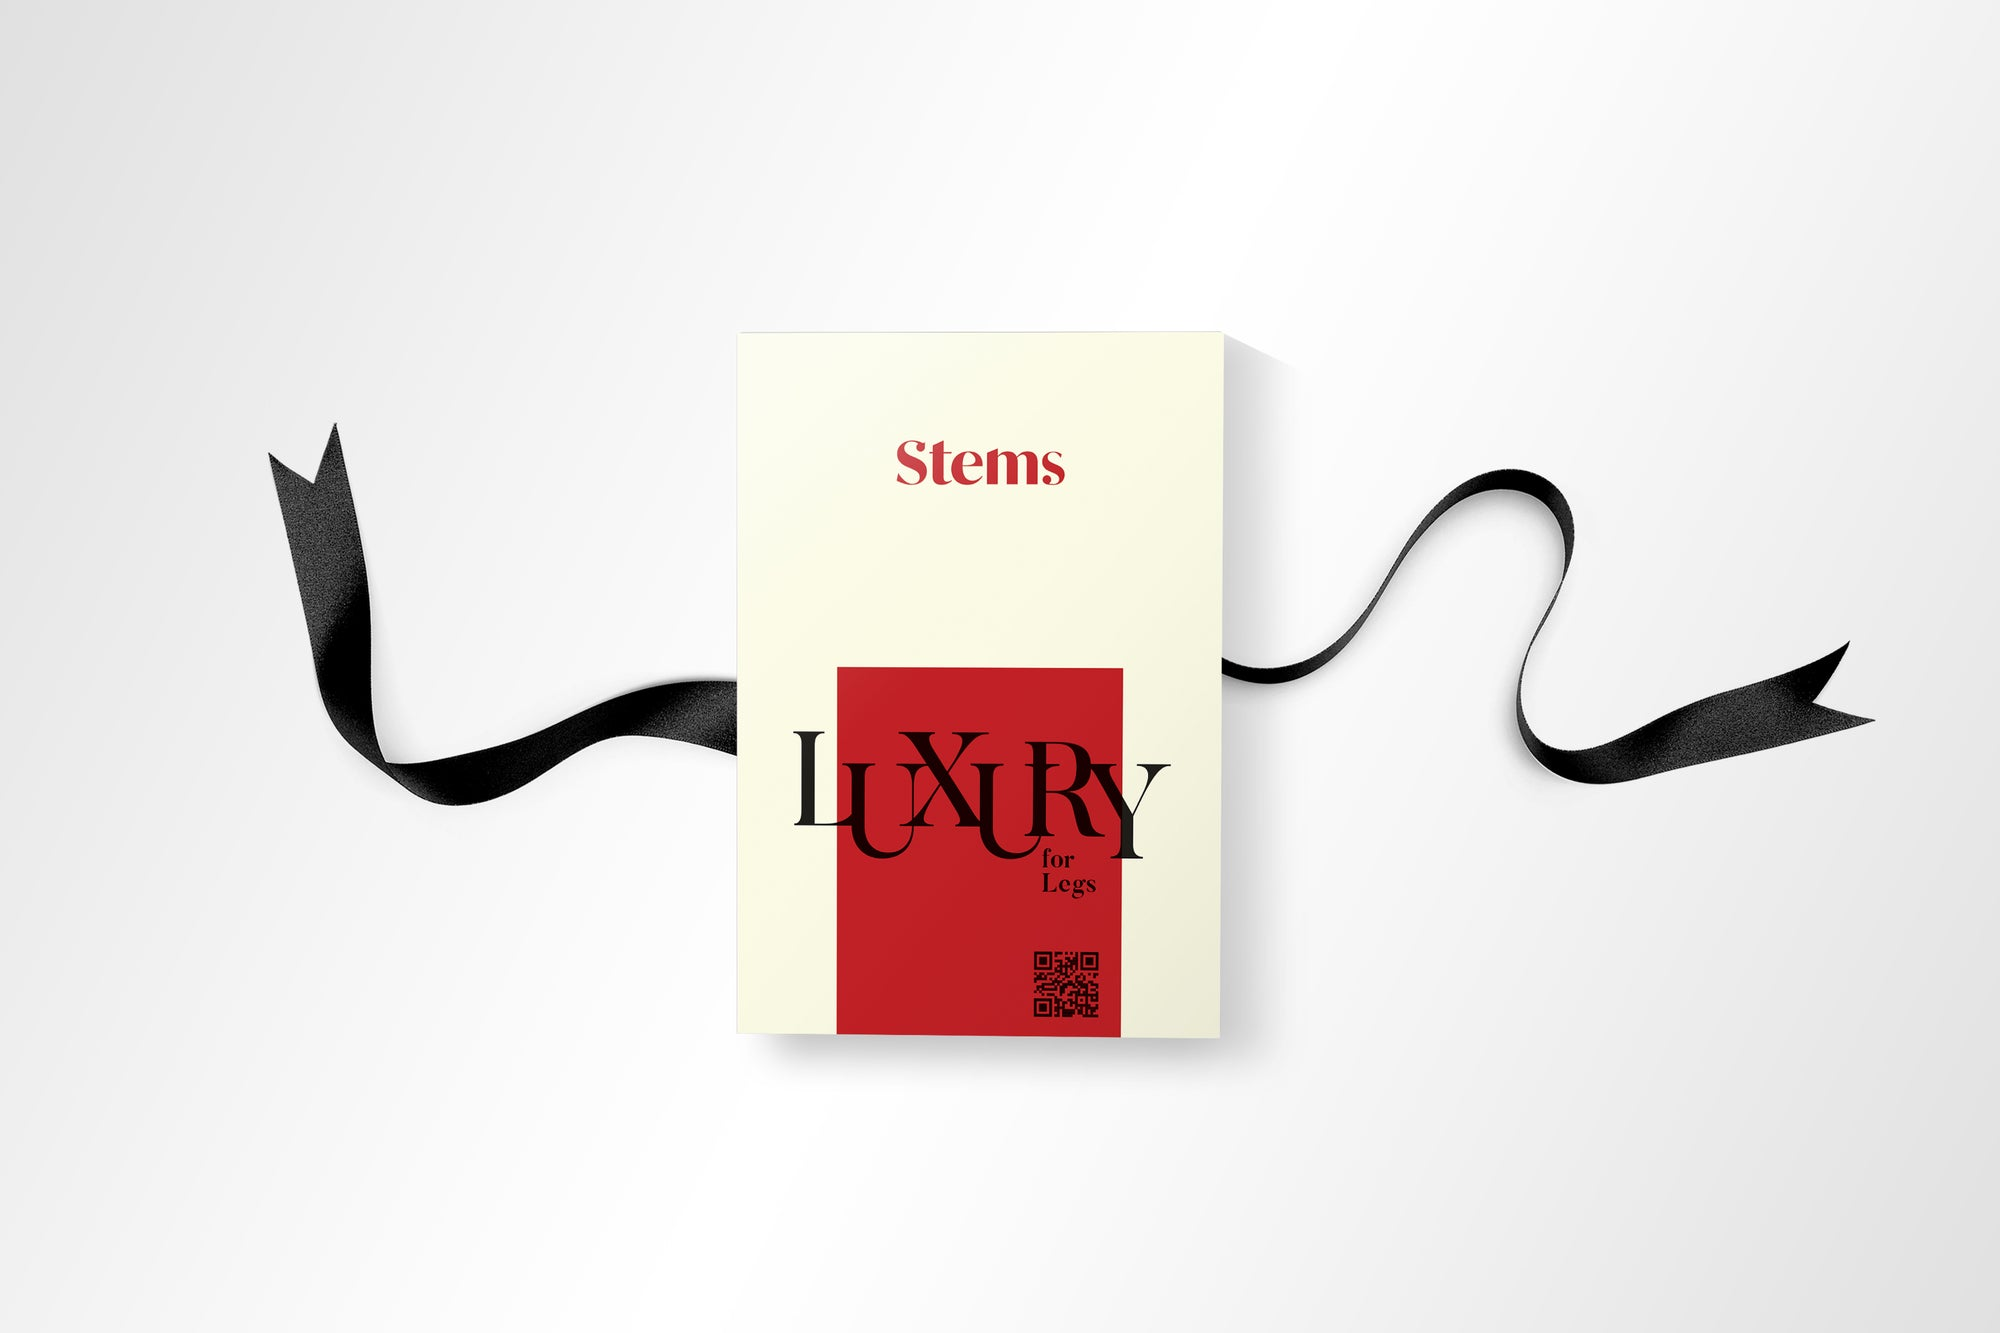 Stems luxury for legs tights packaging